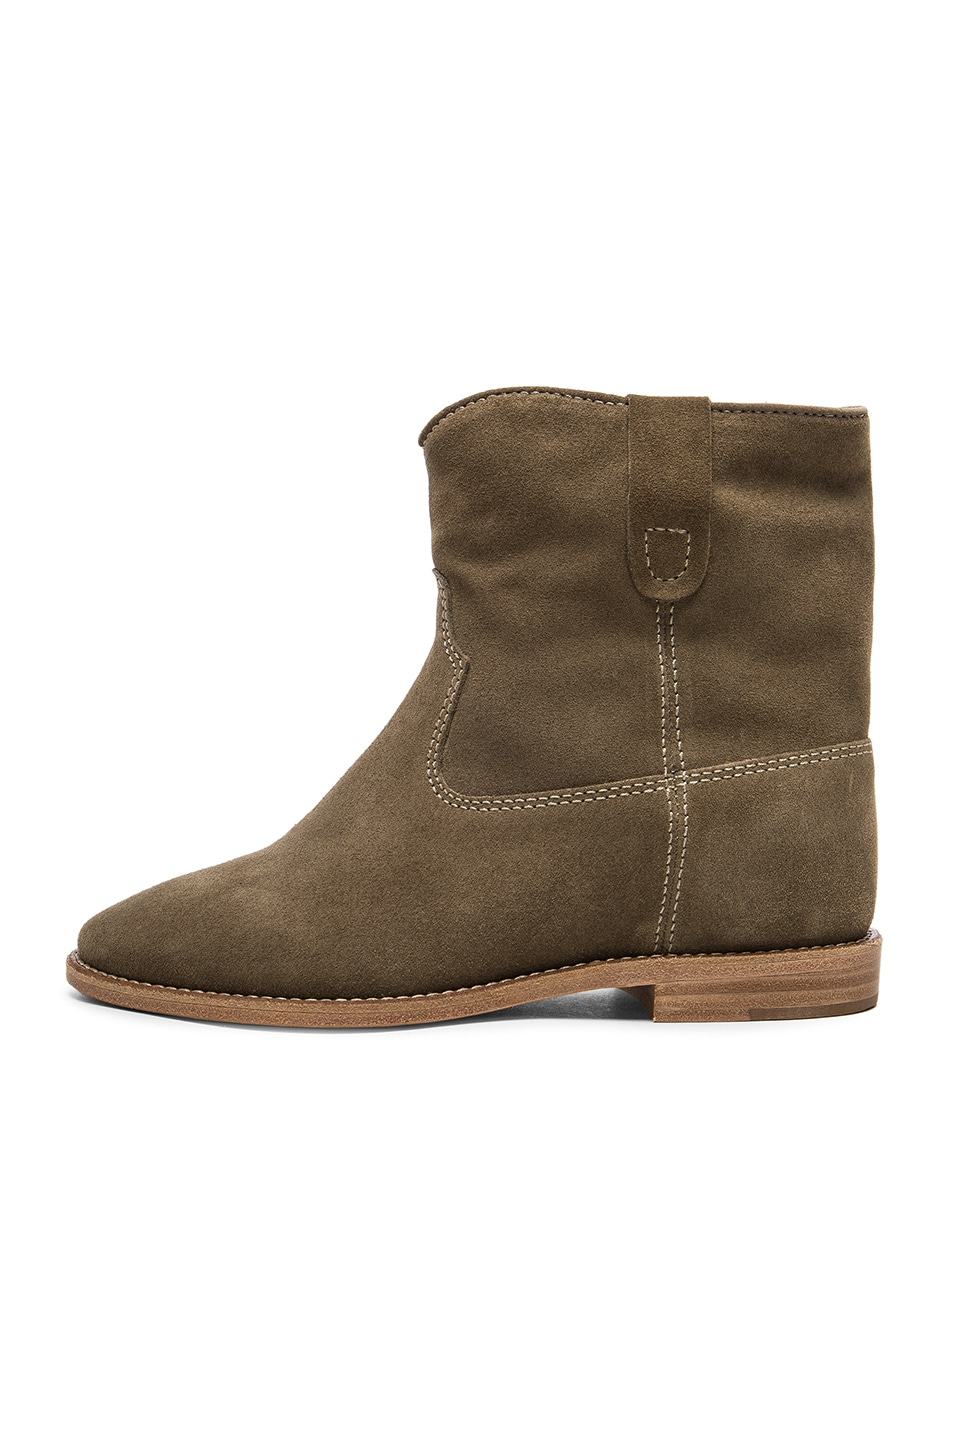 Image 5 of Isabel Marant Etoile Crisi Velvet Booties in Taupe